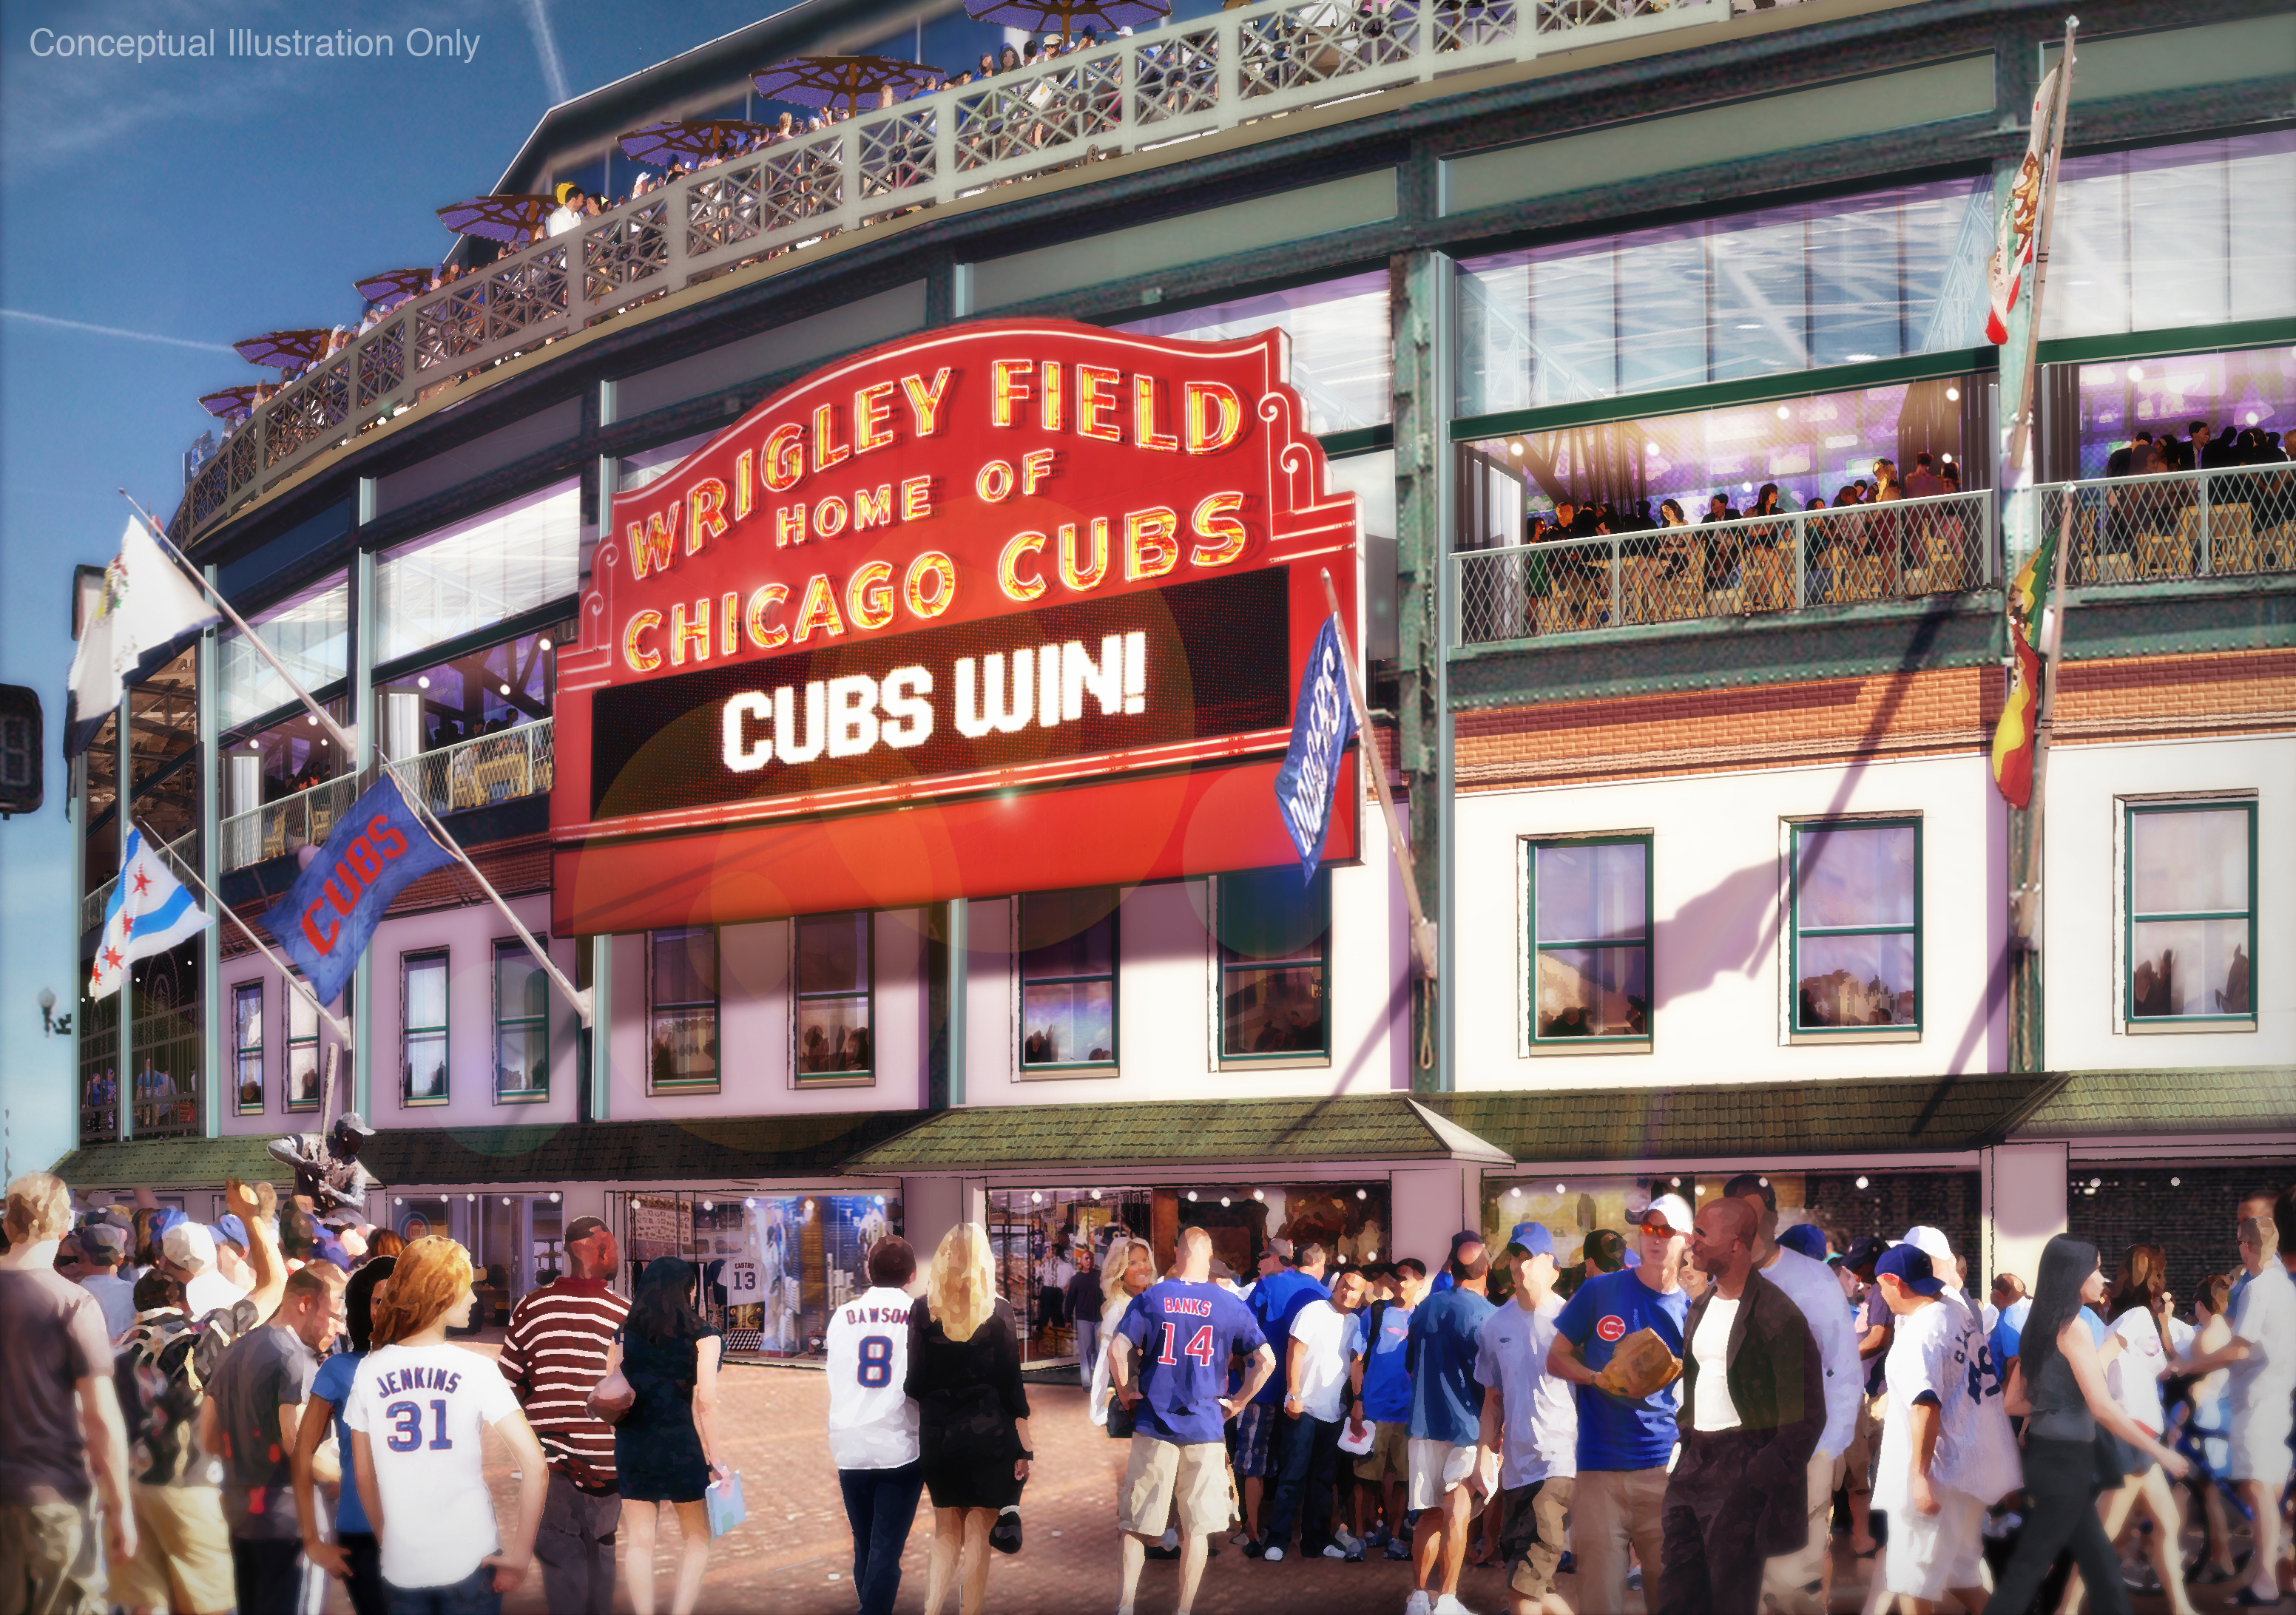 Obsessive Wrigley Renovation Watch: Rooftop Owners Want Nine-Year Extension of Deal With Cubs